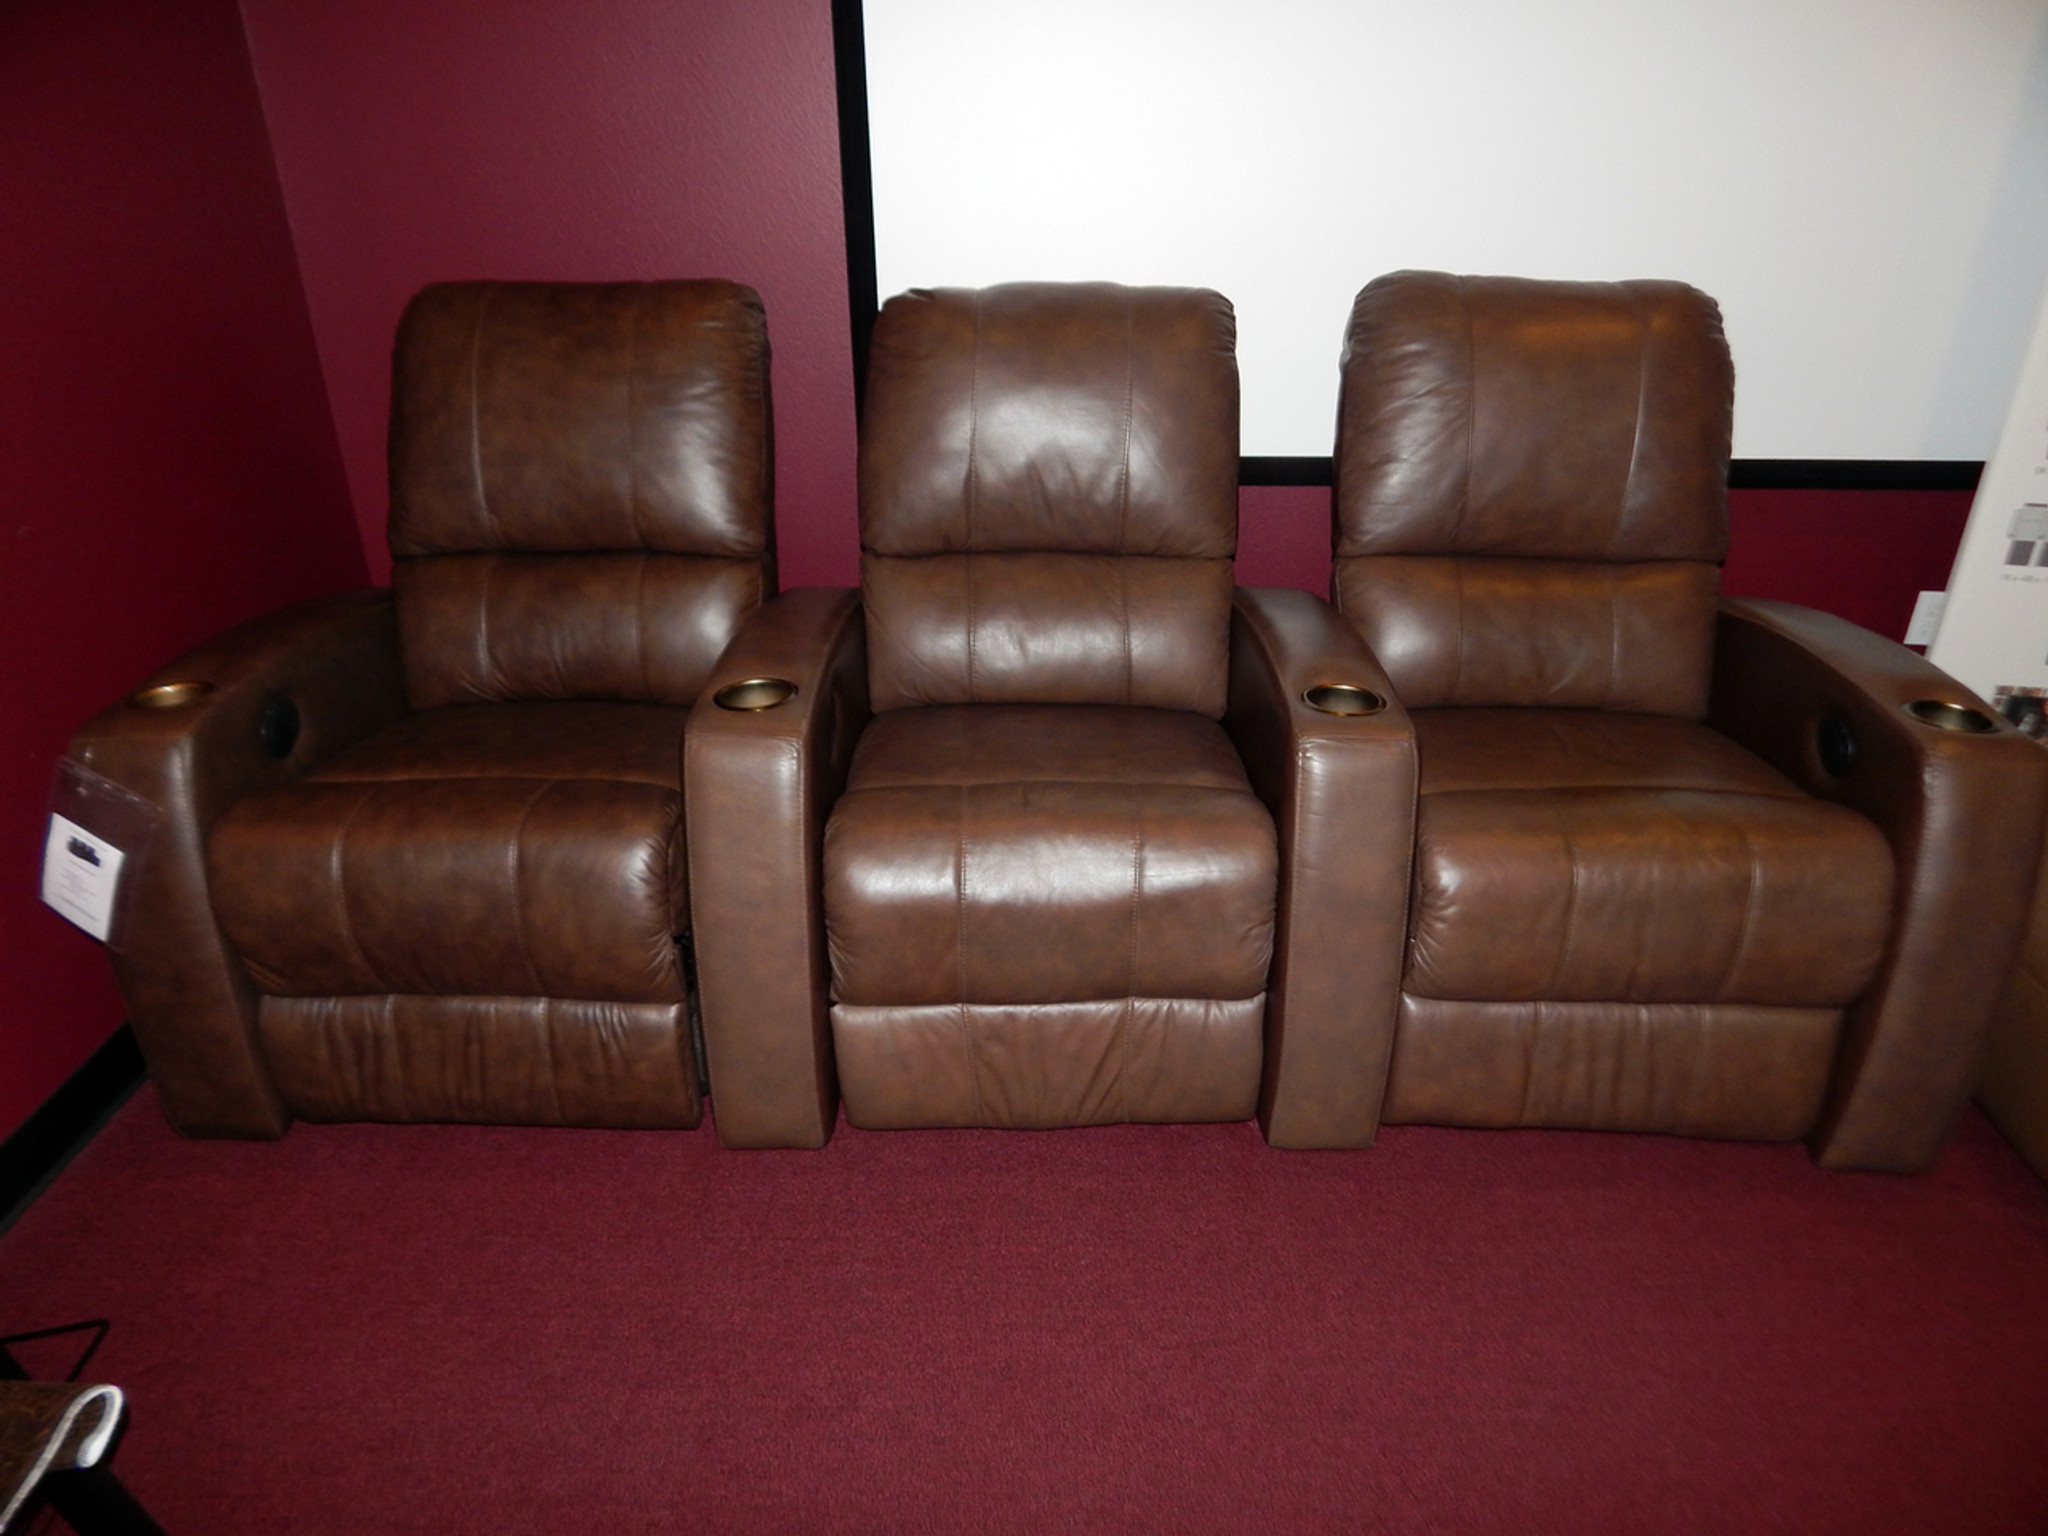 Clearance Sale Home Theater Recliner Pacifico 41920 Row Of 3